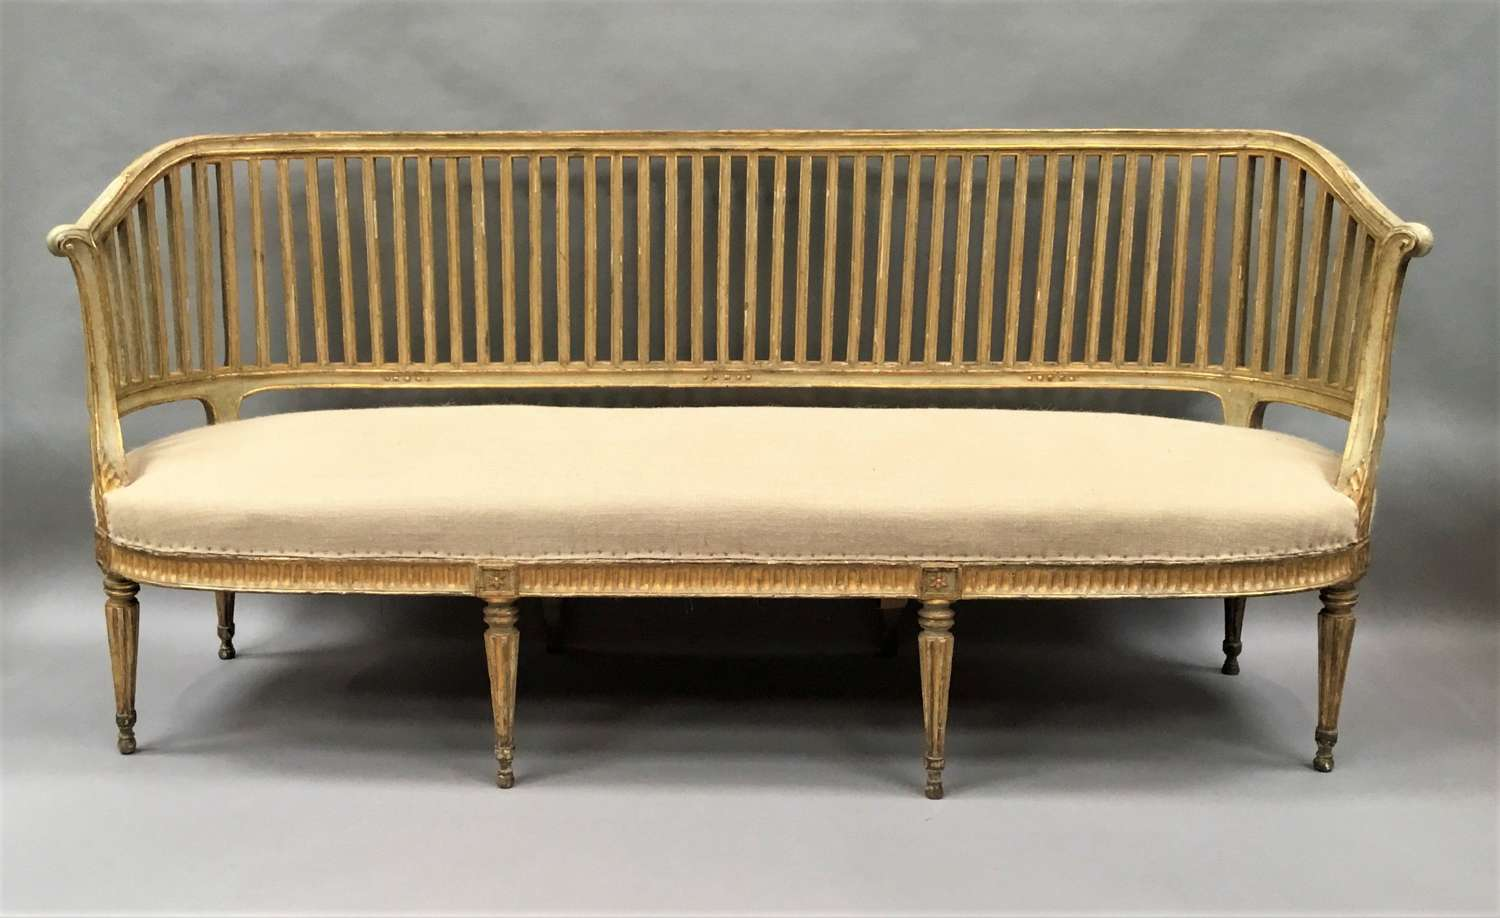 C18th Italian painted and giltwood neoclassical settee